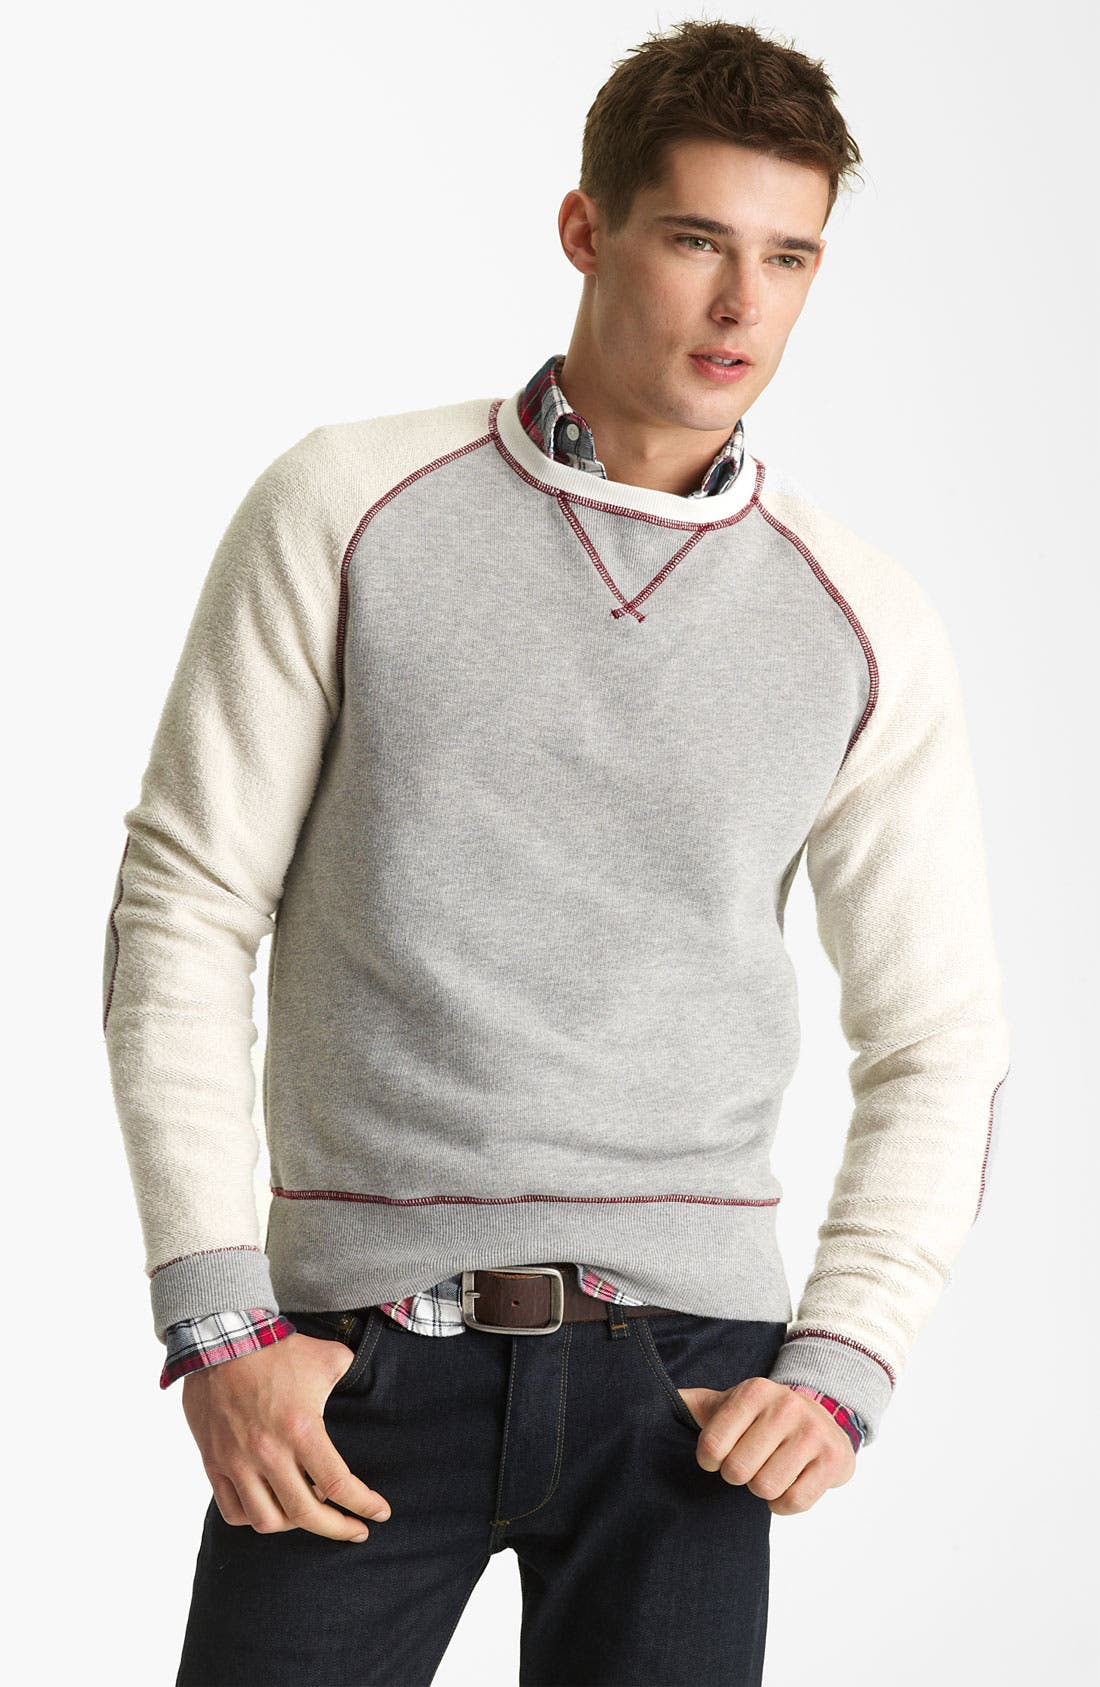 Alternate Image 1 Selected - Gant by Michael Bastian Knit Crewneck Sweatshirt